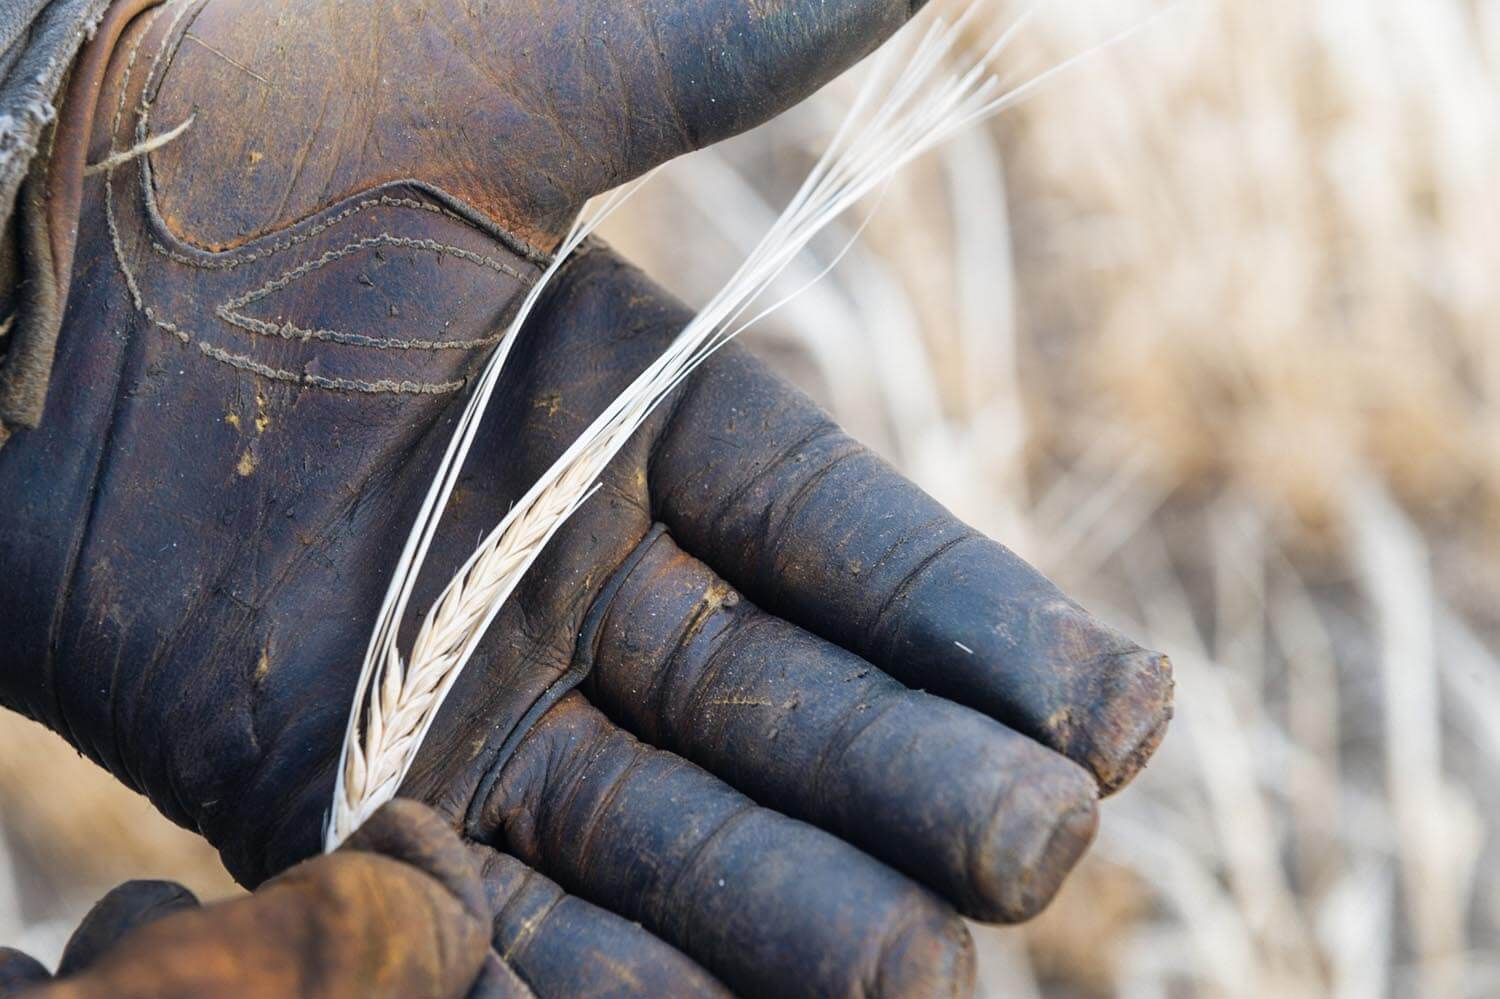 A head of poor-quality malt barley taken directly from a field in Power, Mont. Heat and a lack of water resulted in small and light kernels. Grain rejected for malt barley often ends up as animal feed. (Courtesy Tony Bynum)